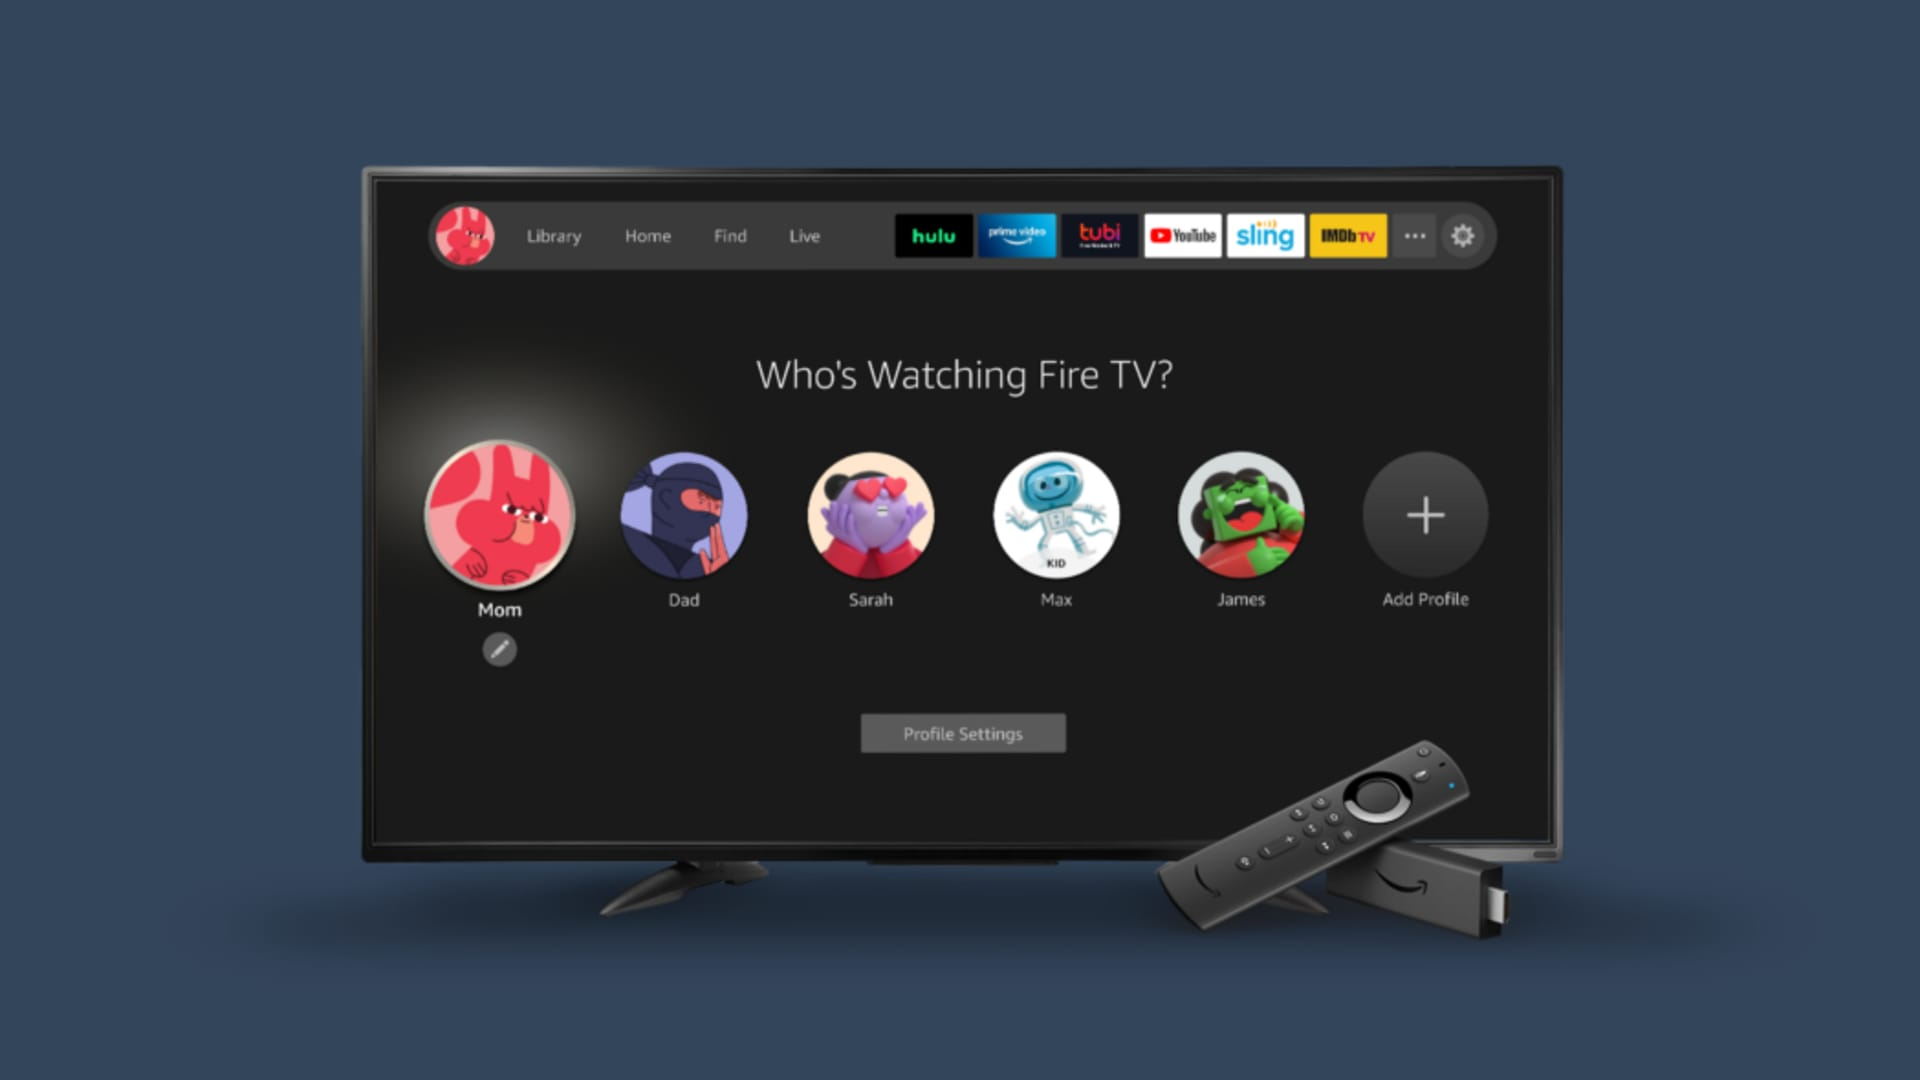 Amazon's new Fire TV software